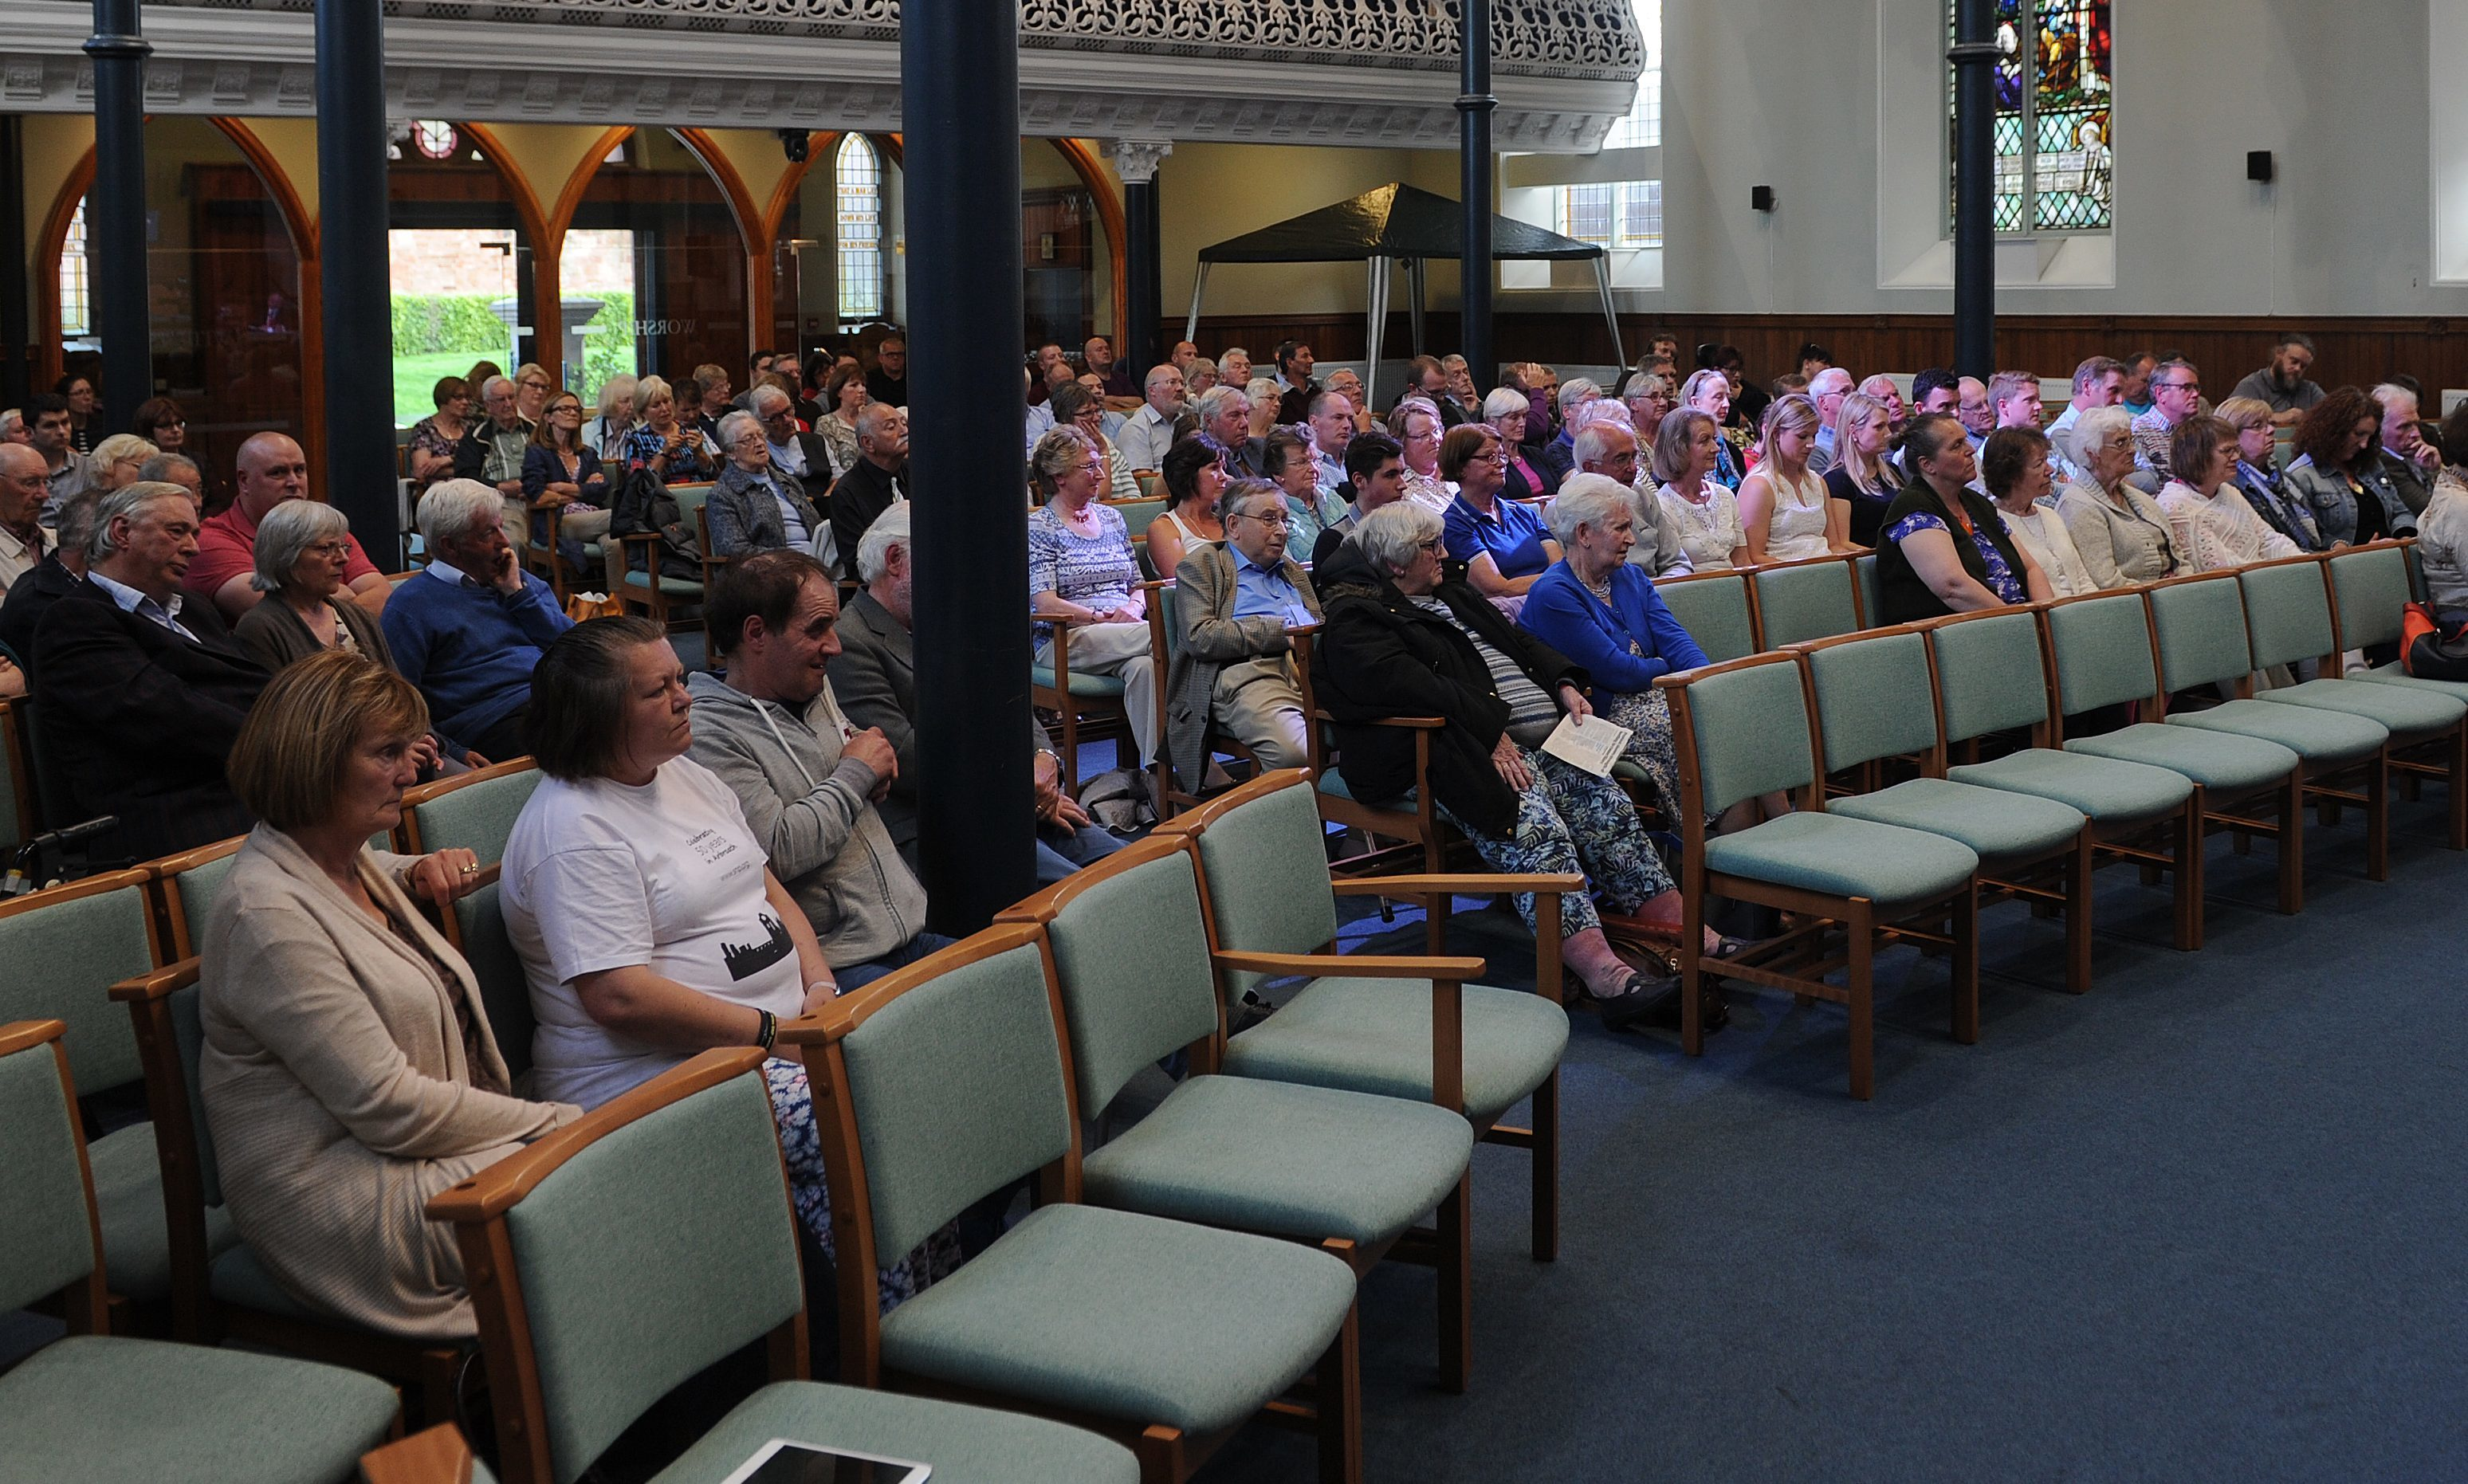 The audience at St Andrews Church, Arbroath.